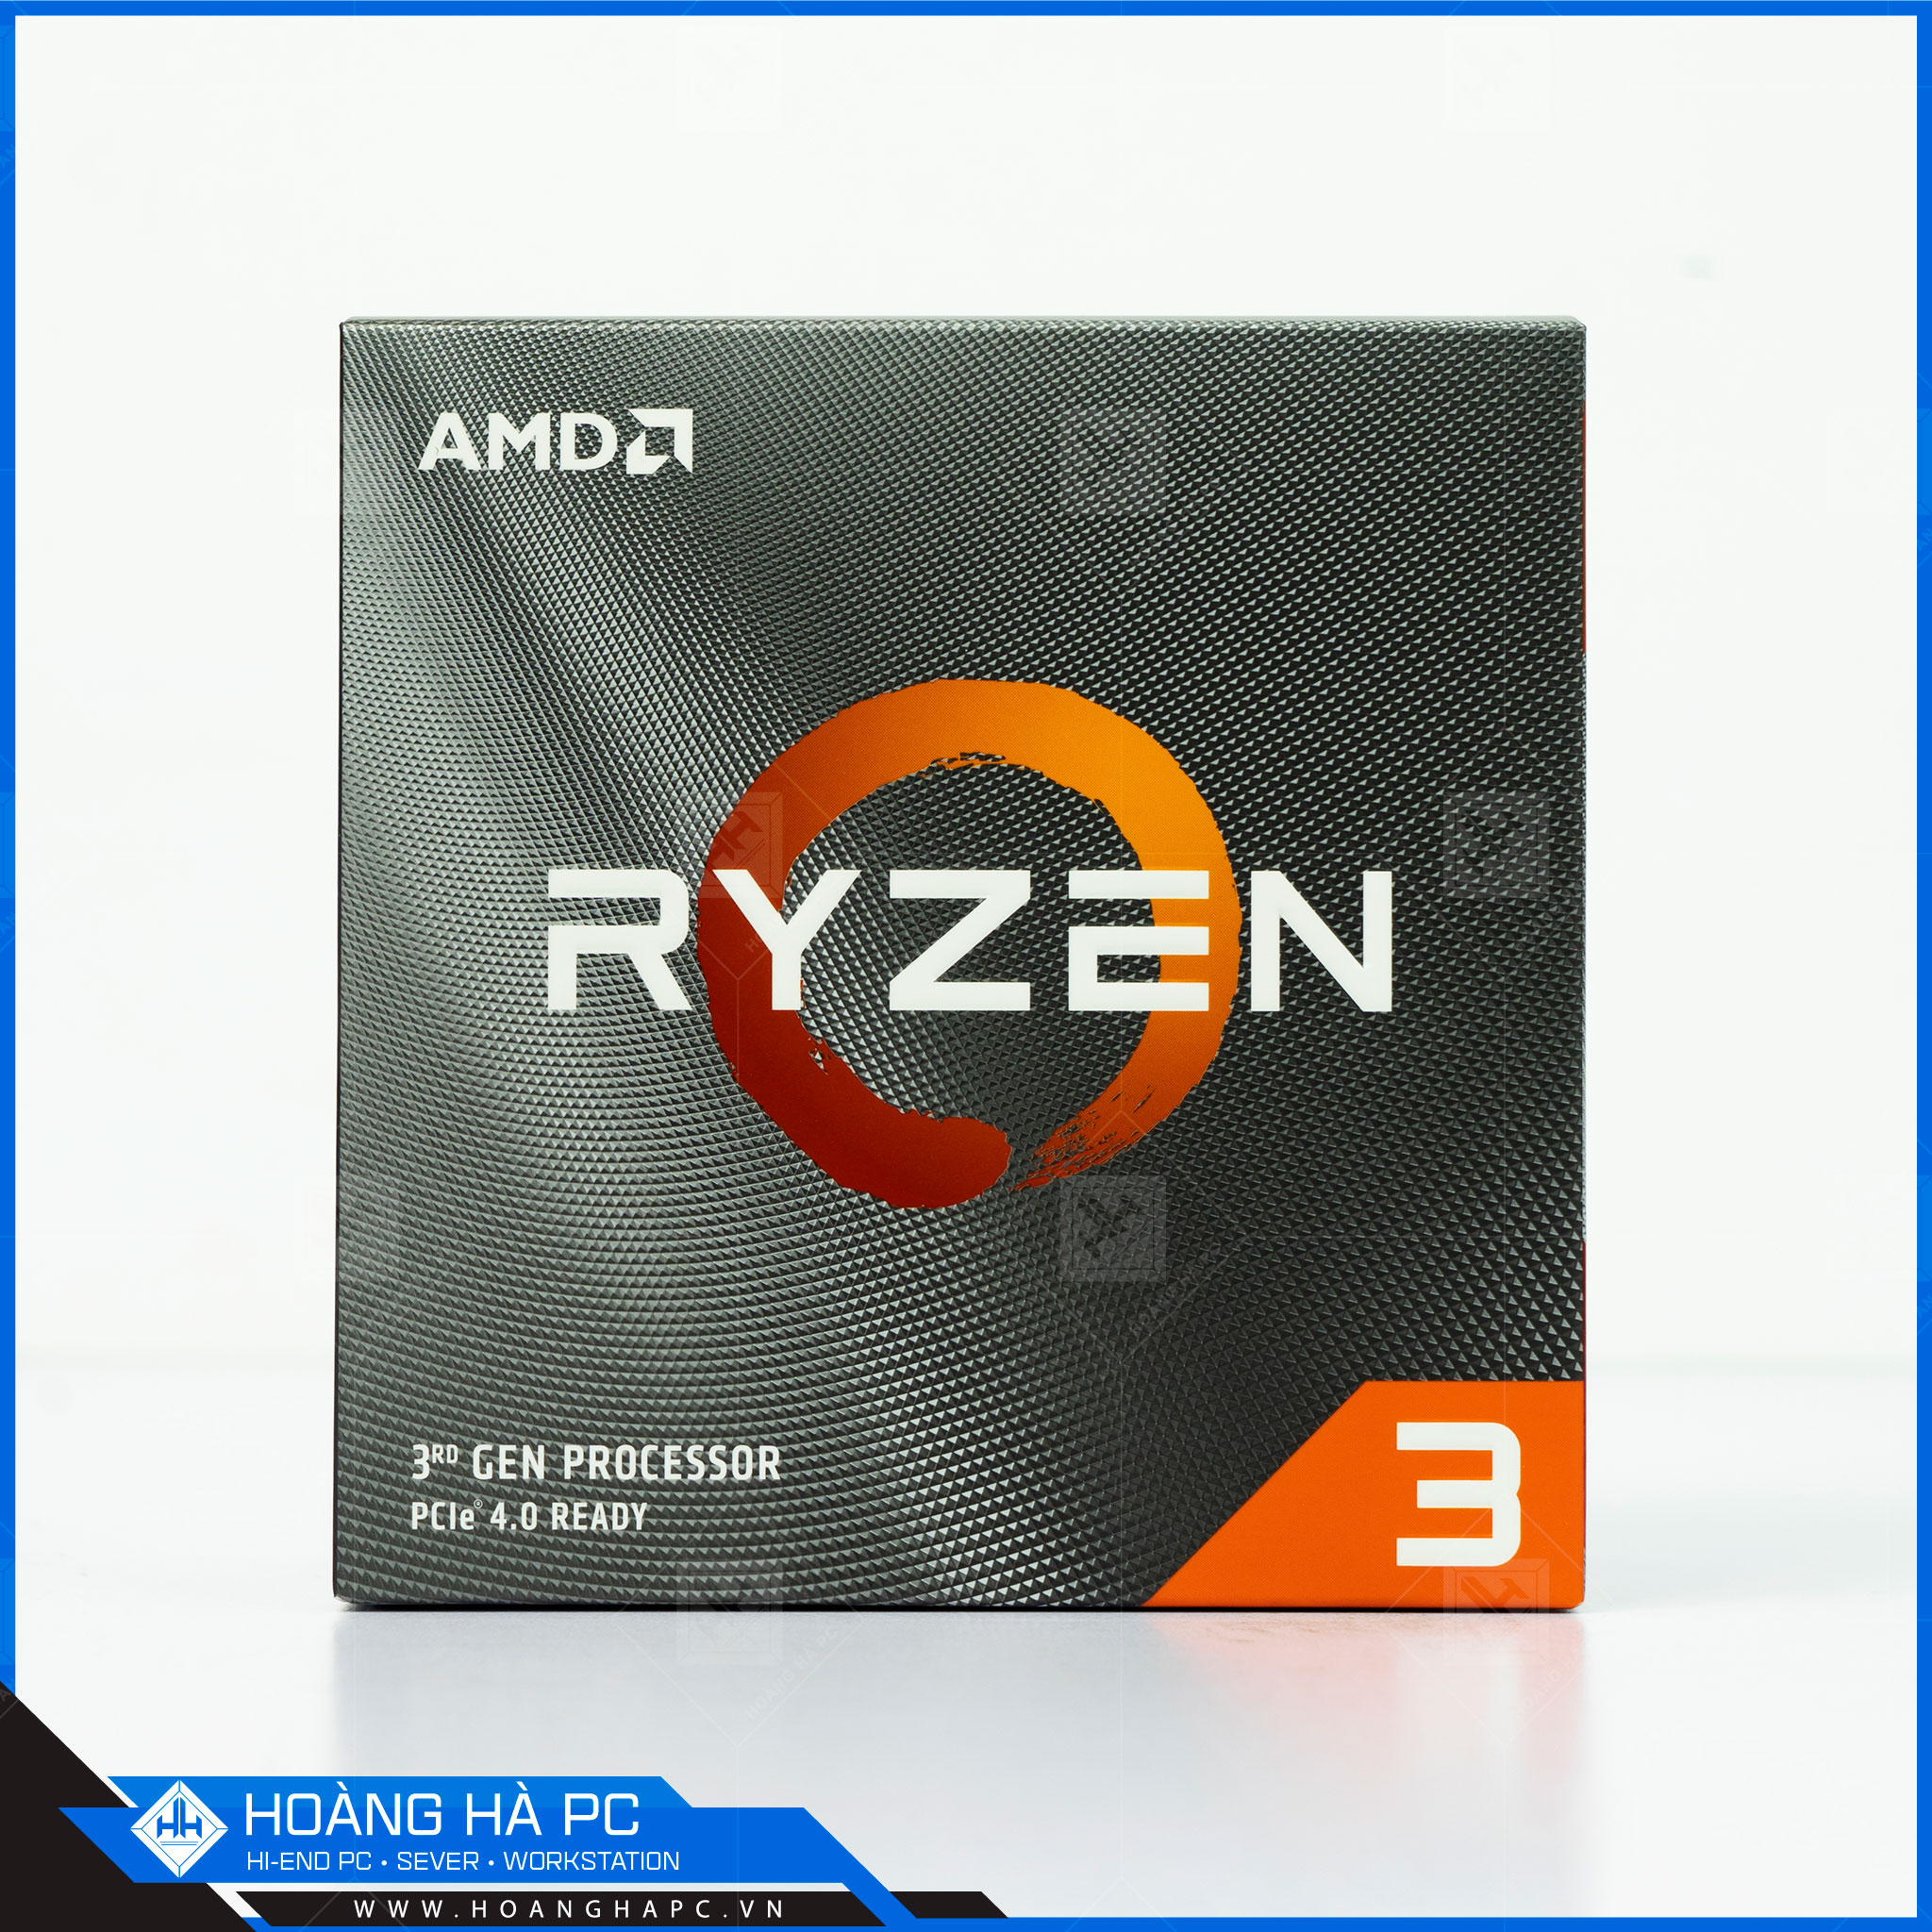 CPU AMD Ryzen 3 3300X (3.8 GHz - 4.3 GHz with boost / 18MB / 4 cores 8 threads / Socket AM4)